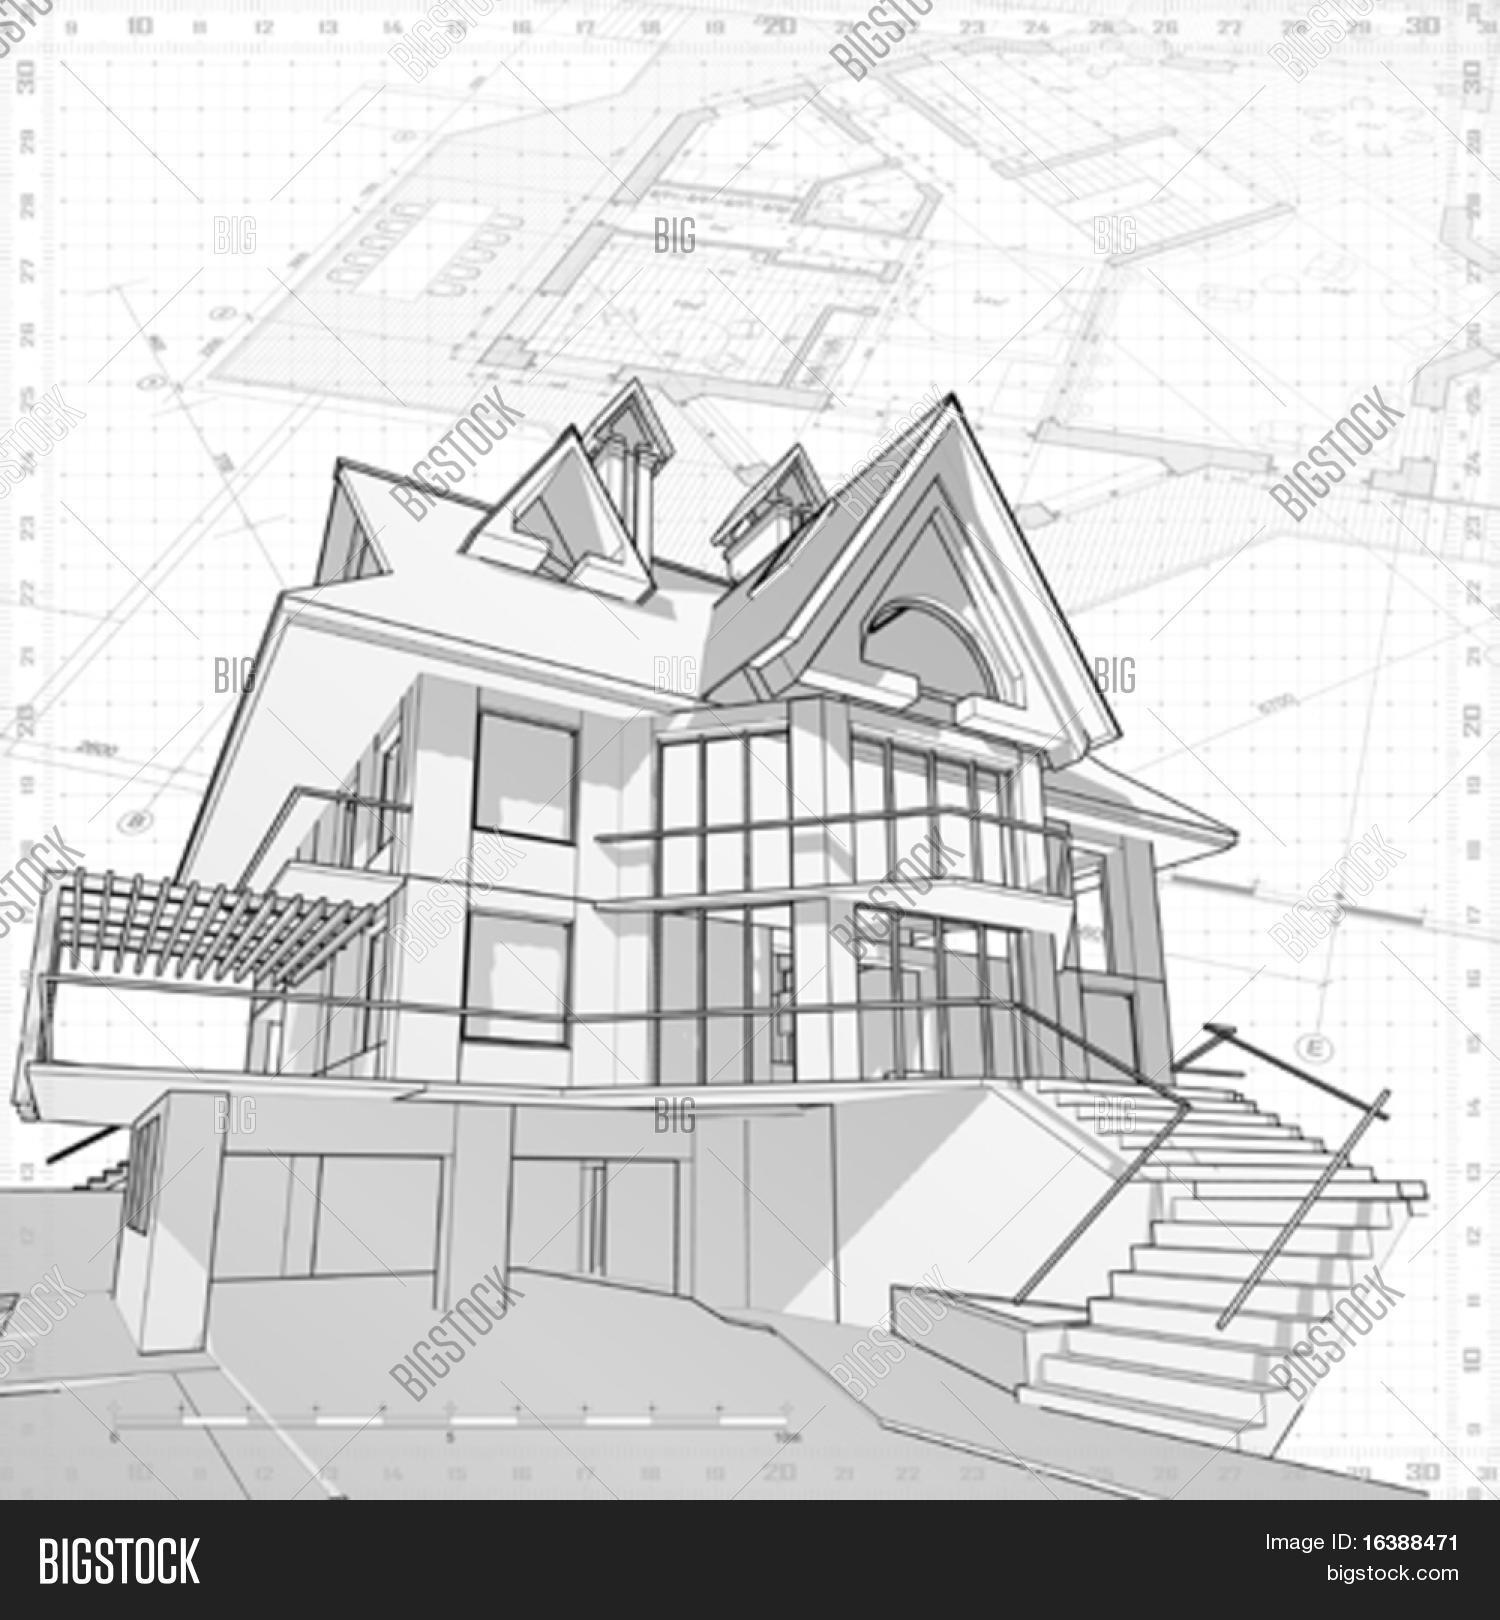 Delightful 3d House Vector Technical Draw Stock Vector Stock Draw Your House In 3d